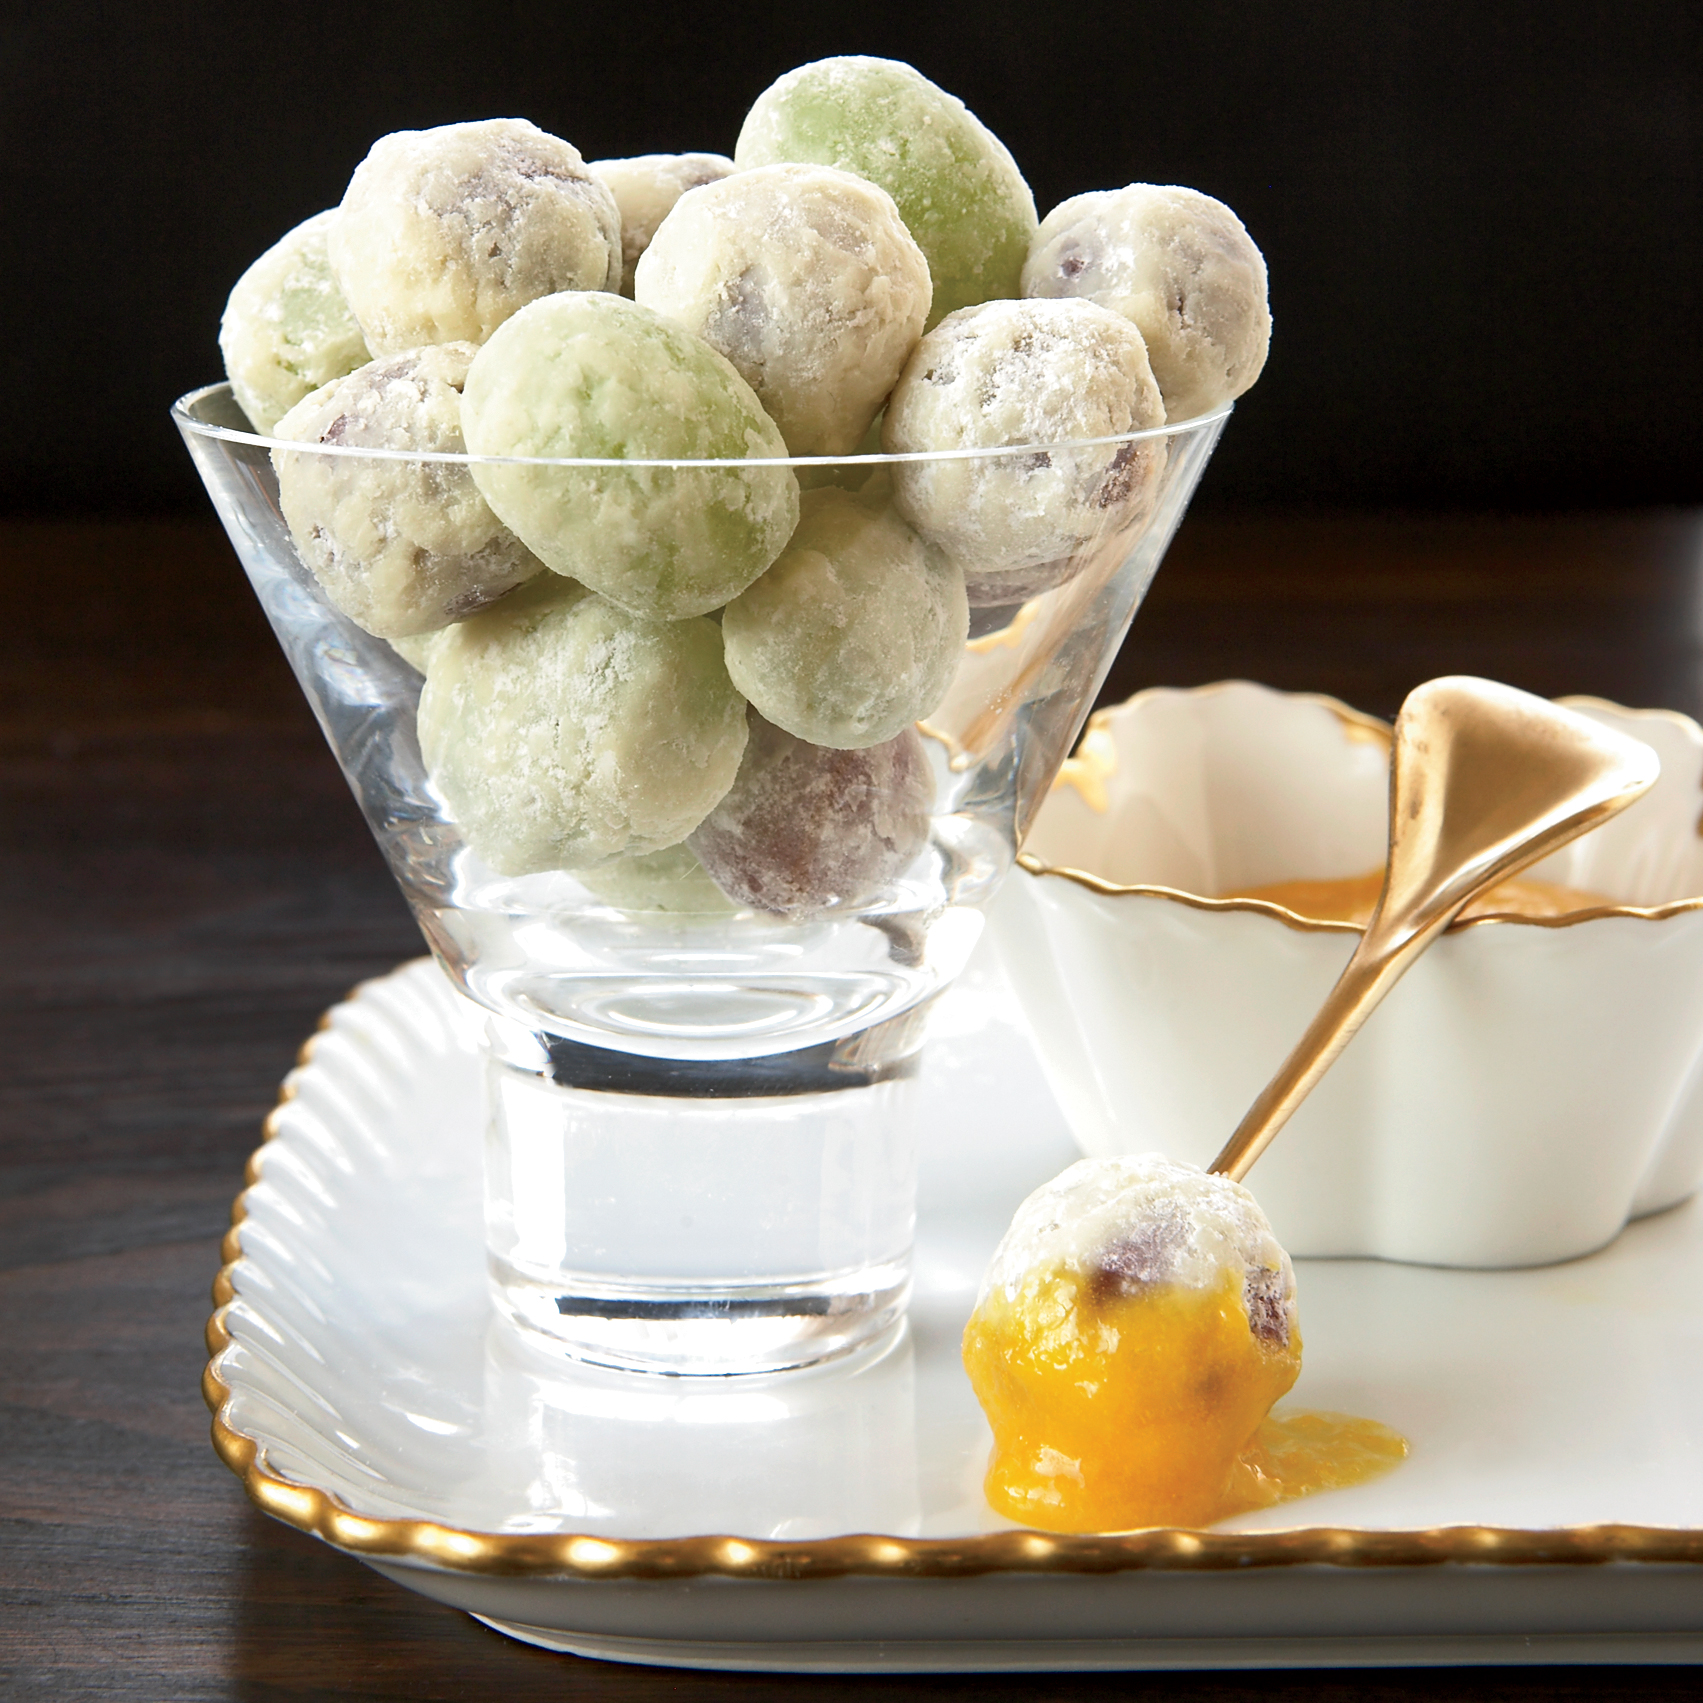 200804-r-white-choc-grapes.jpg